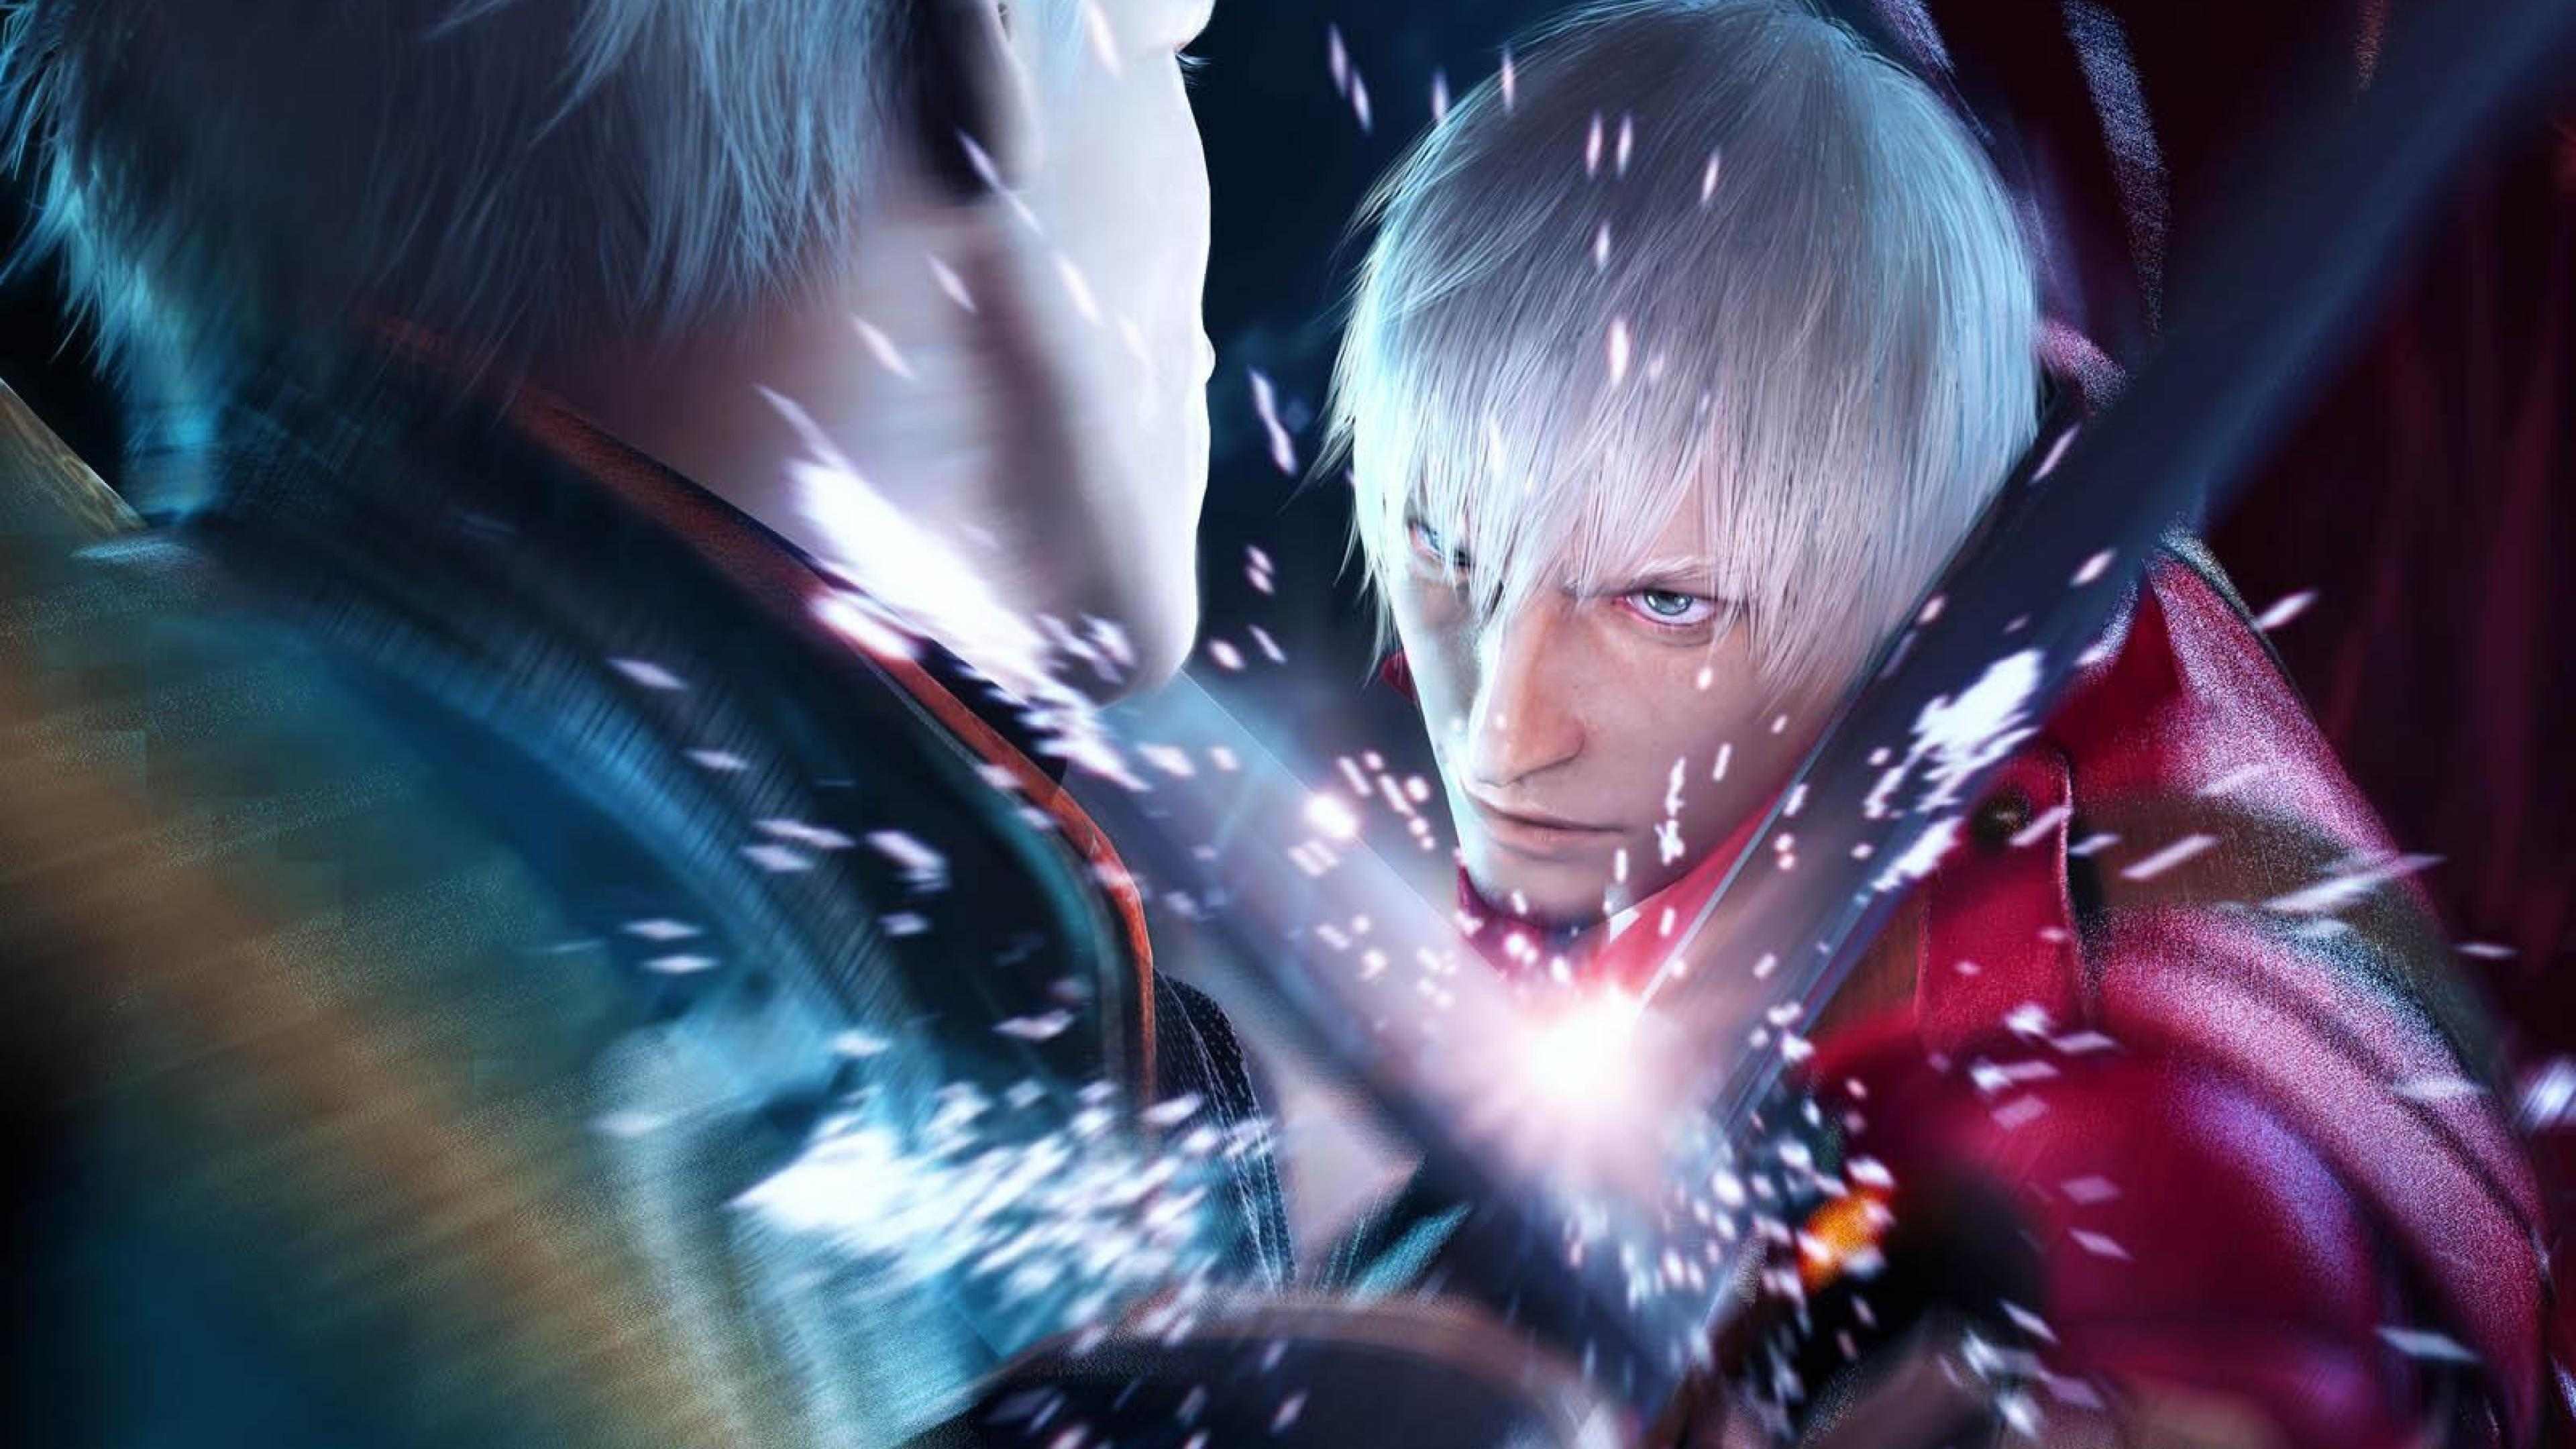 devil may cry 3 dante vs vergil ps4wallpapers